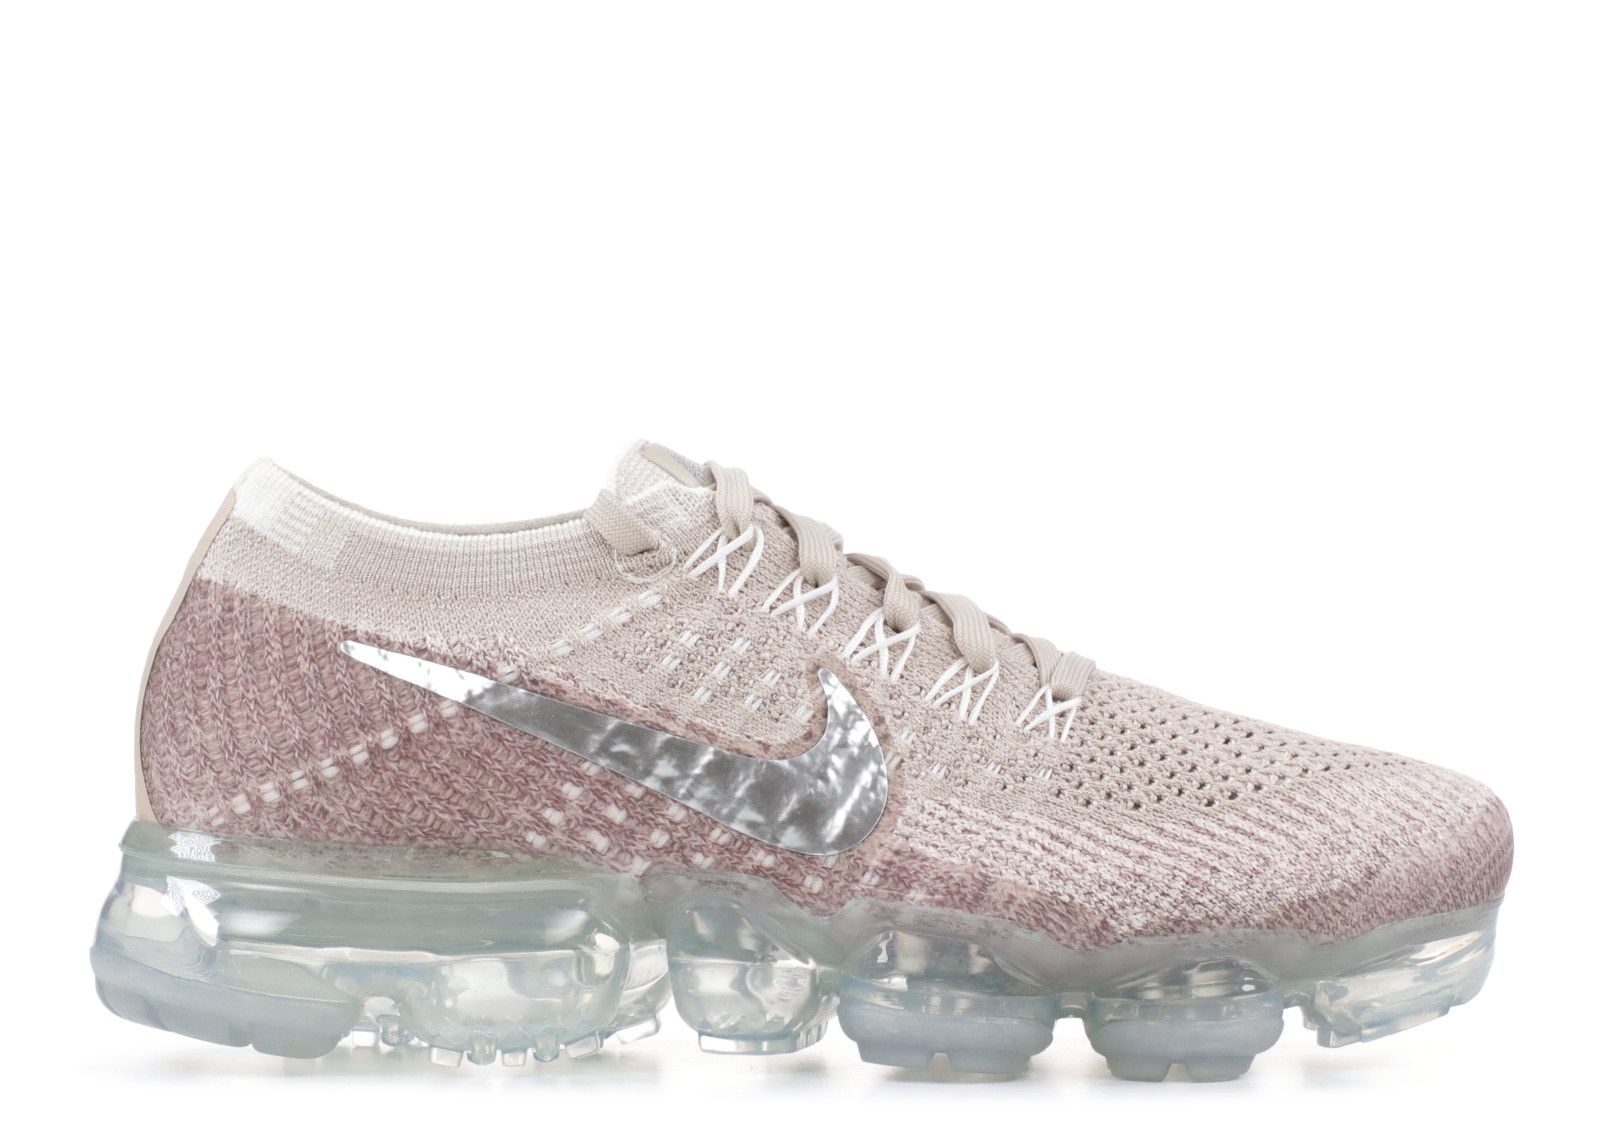 super popular aed6c ab8f9 W's nike air vapormax flyknit | buying right now. in 2019 ...